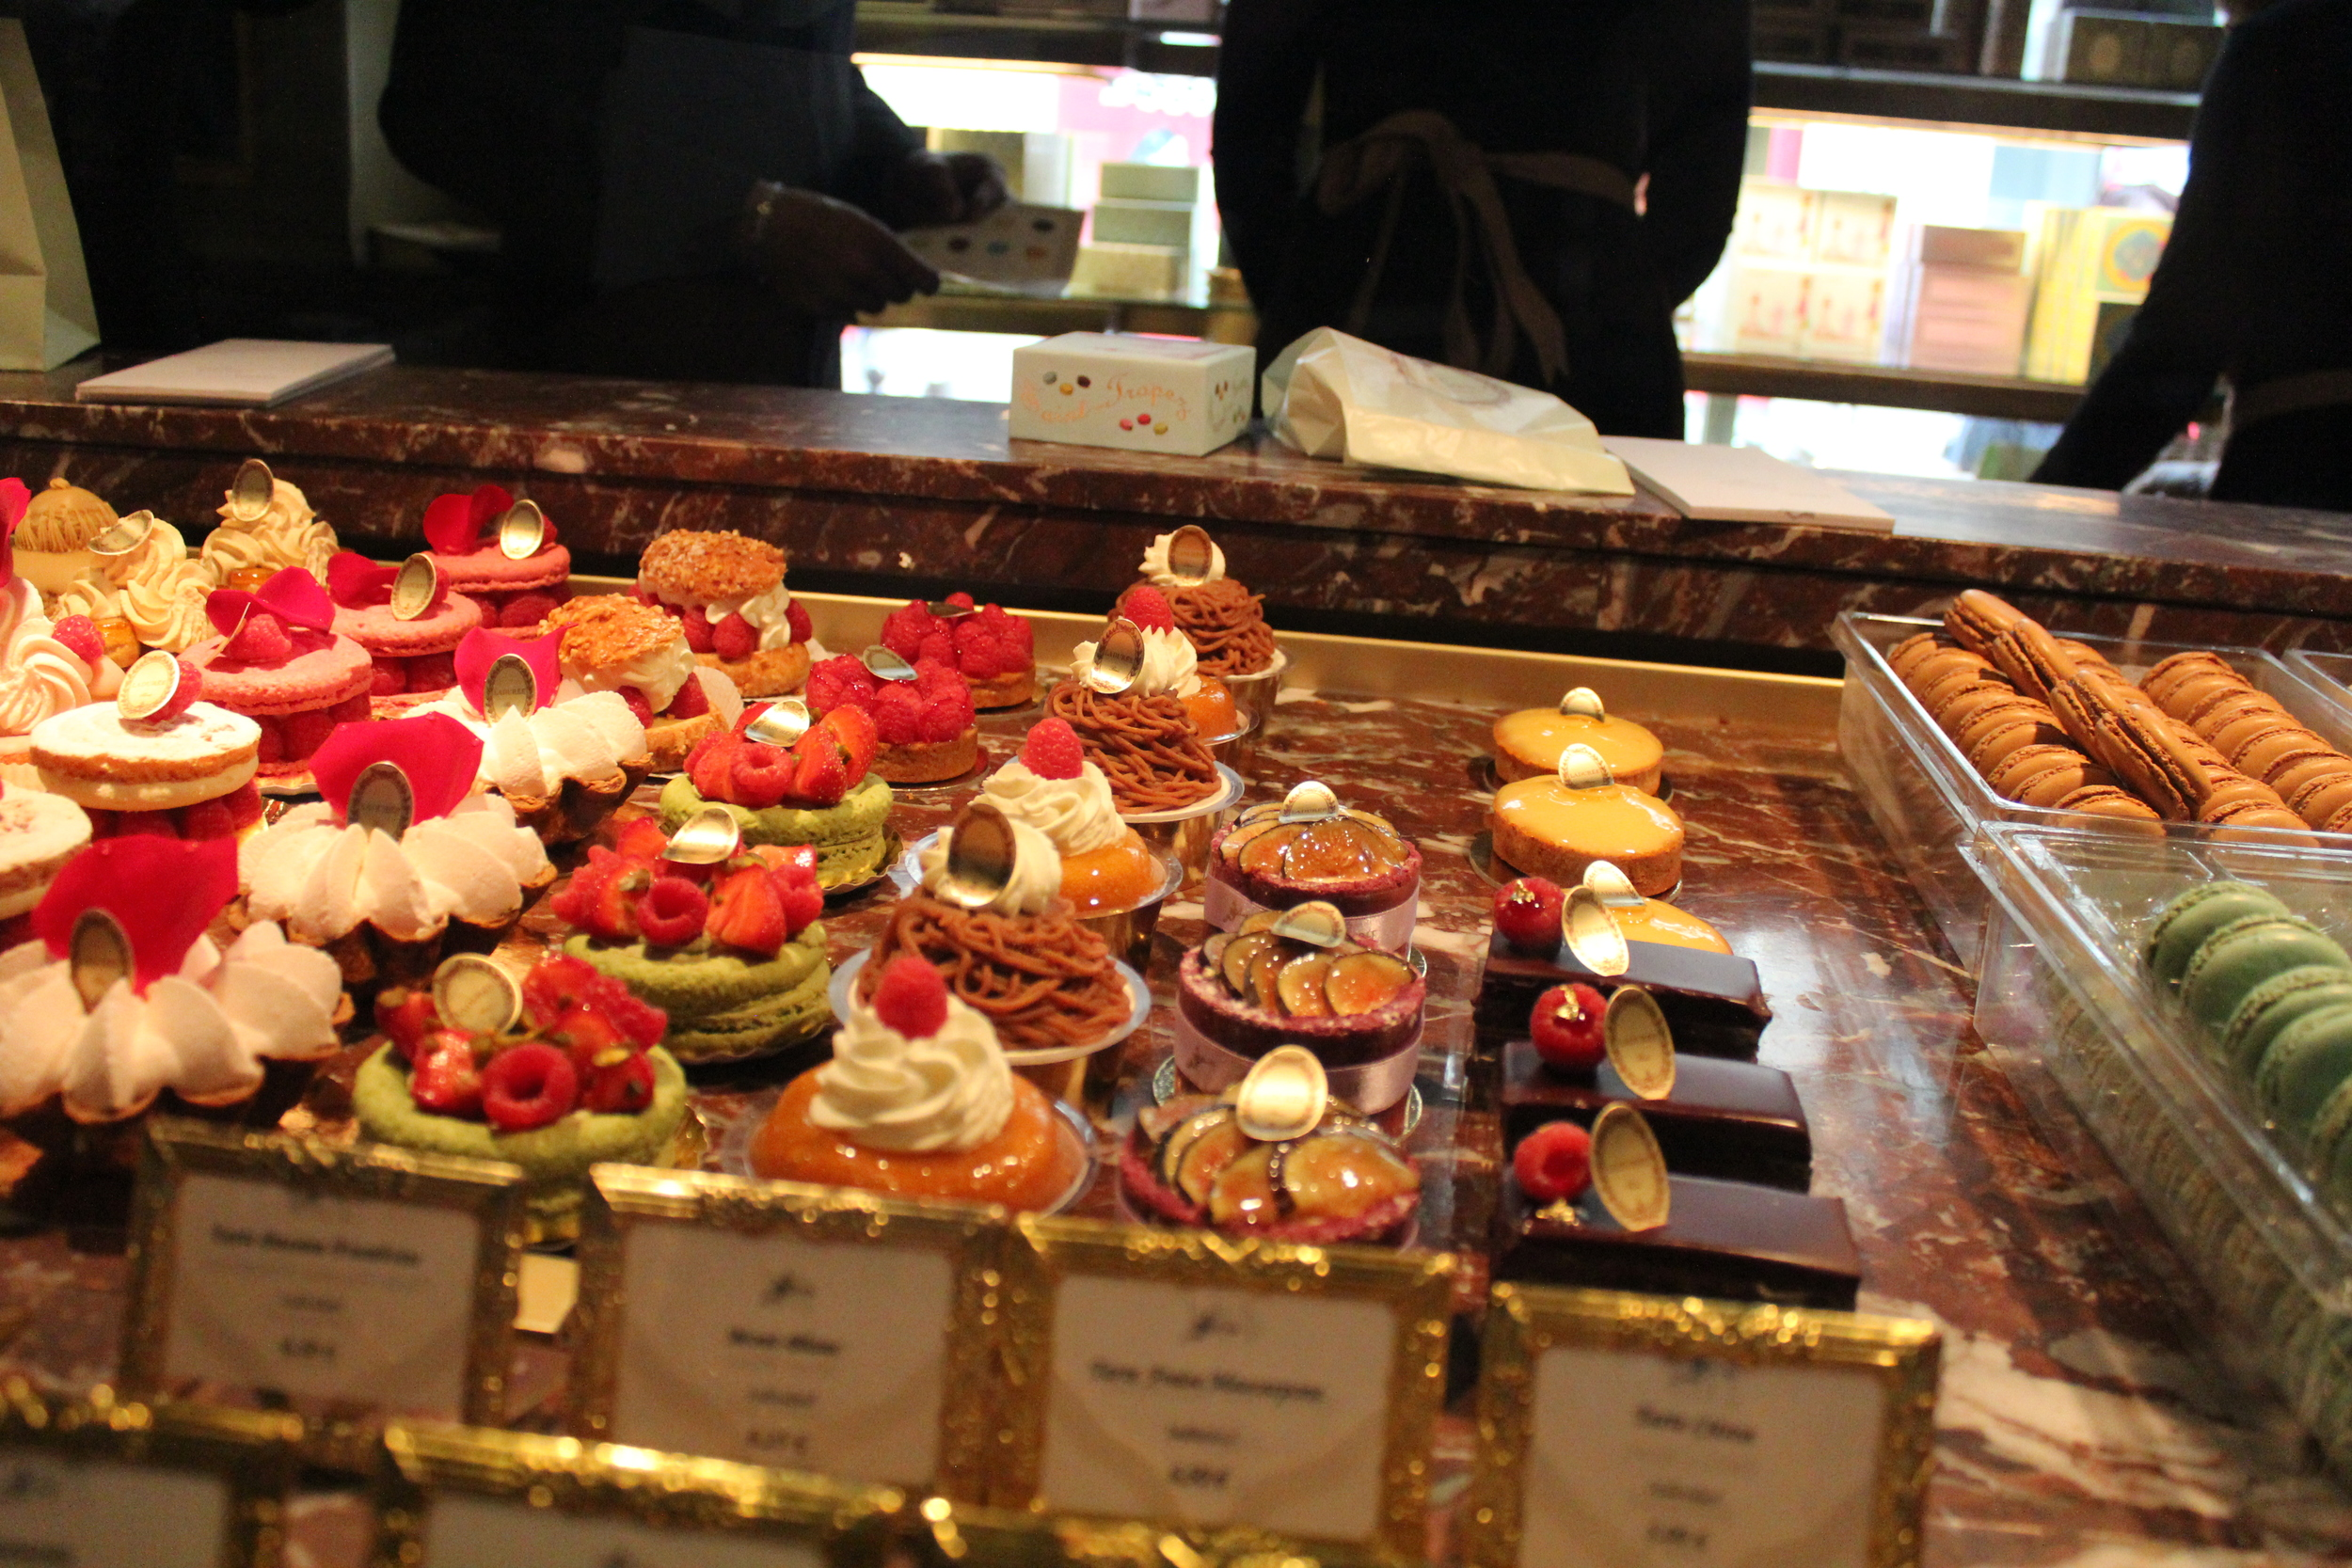 Laduree Pastries